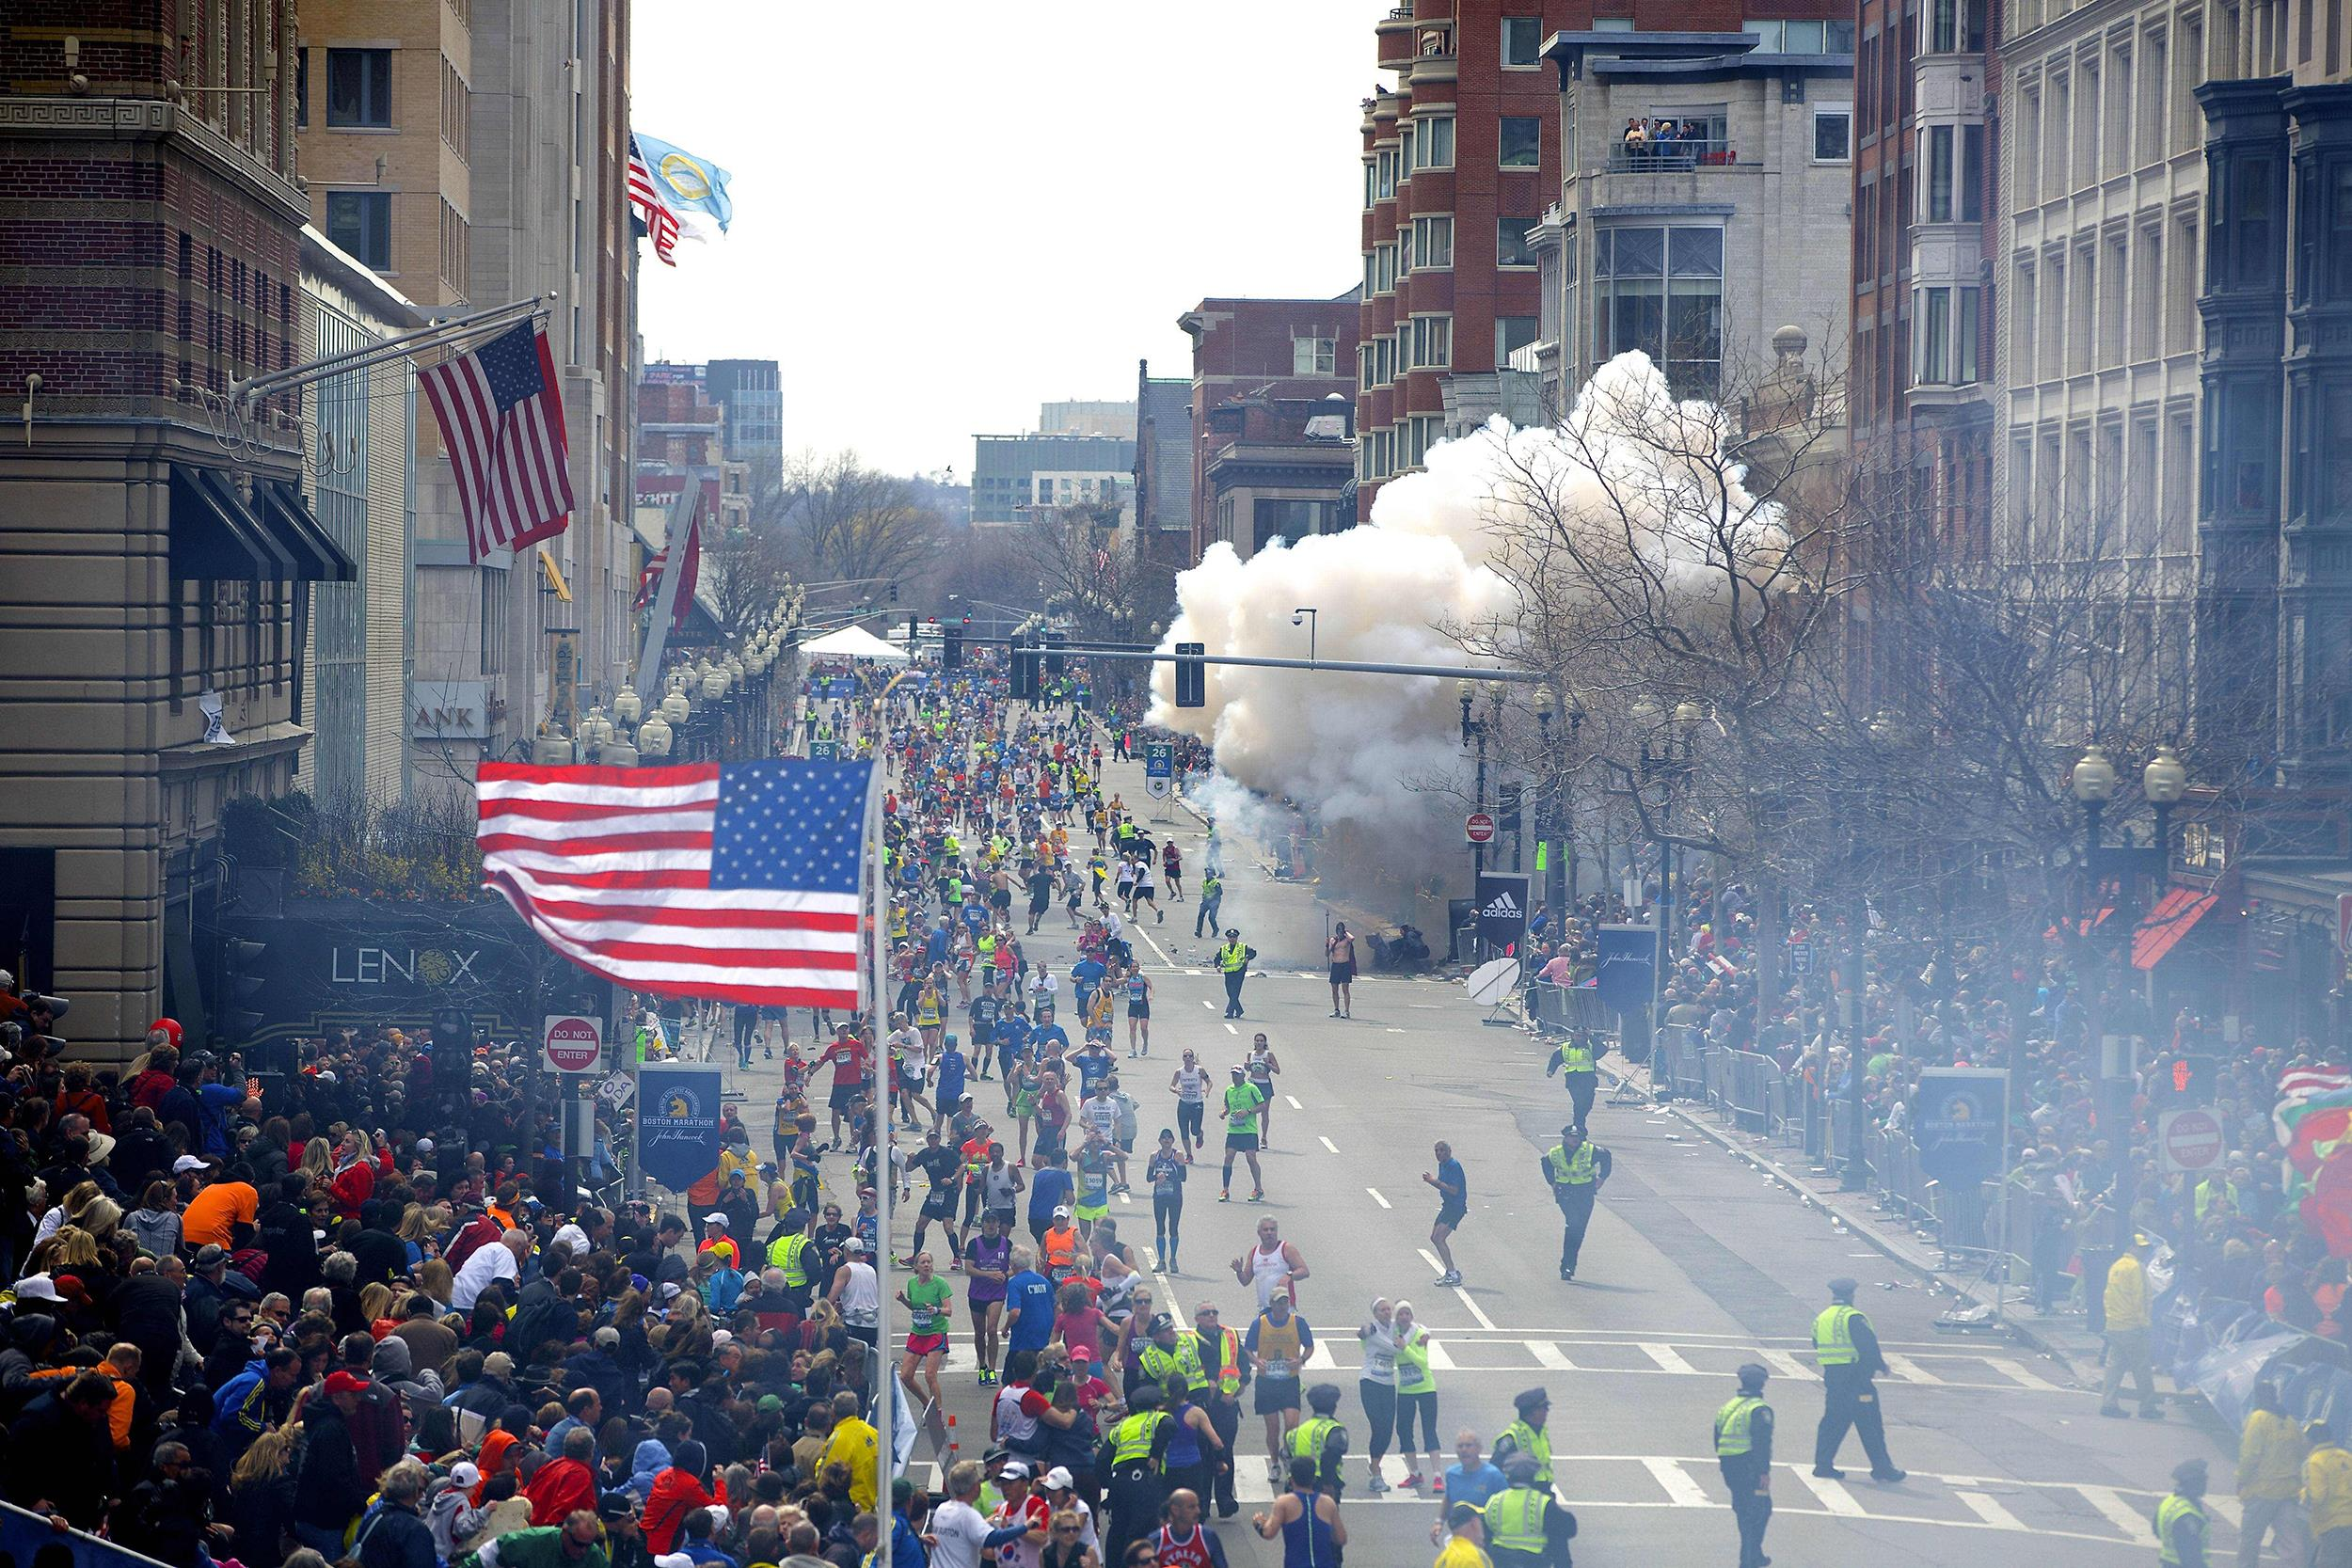 Image: A bomb explodes in the crowd as runners cross the finish line during the 117th Boston Marathon